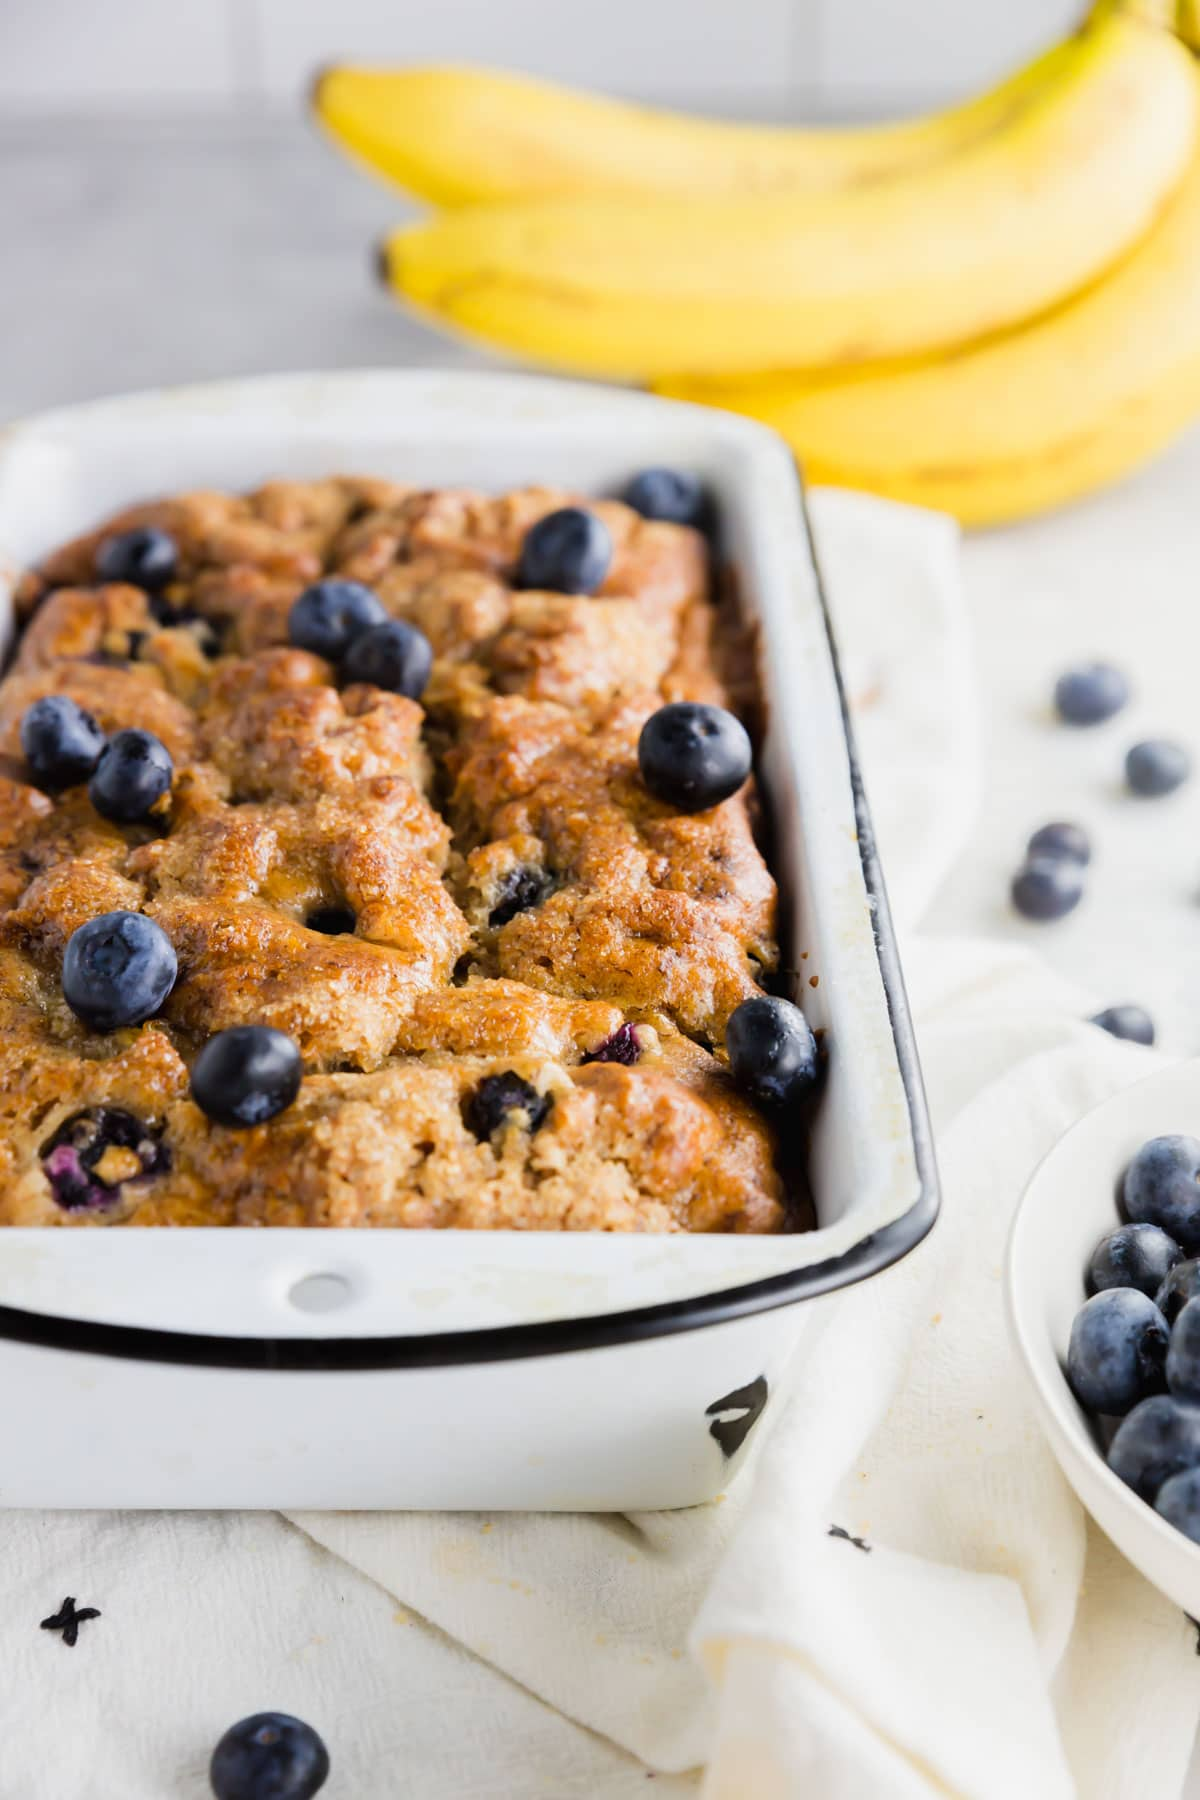 A photo of a gluten-free vegan blueberry banana bread in a white loaf pan with bananas in the background.